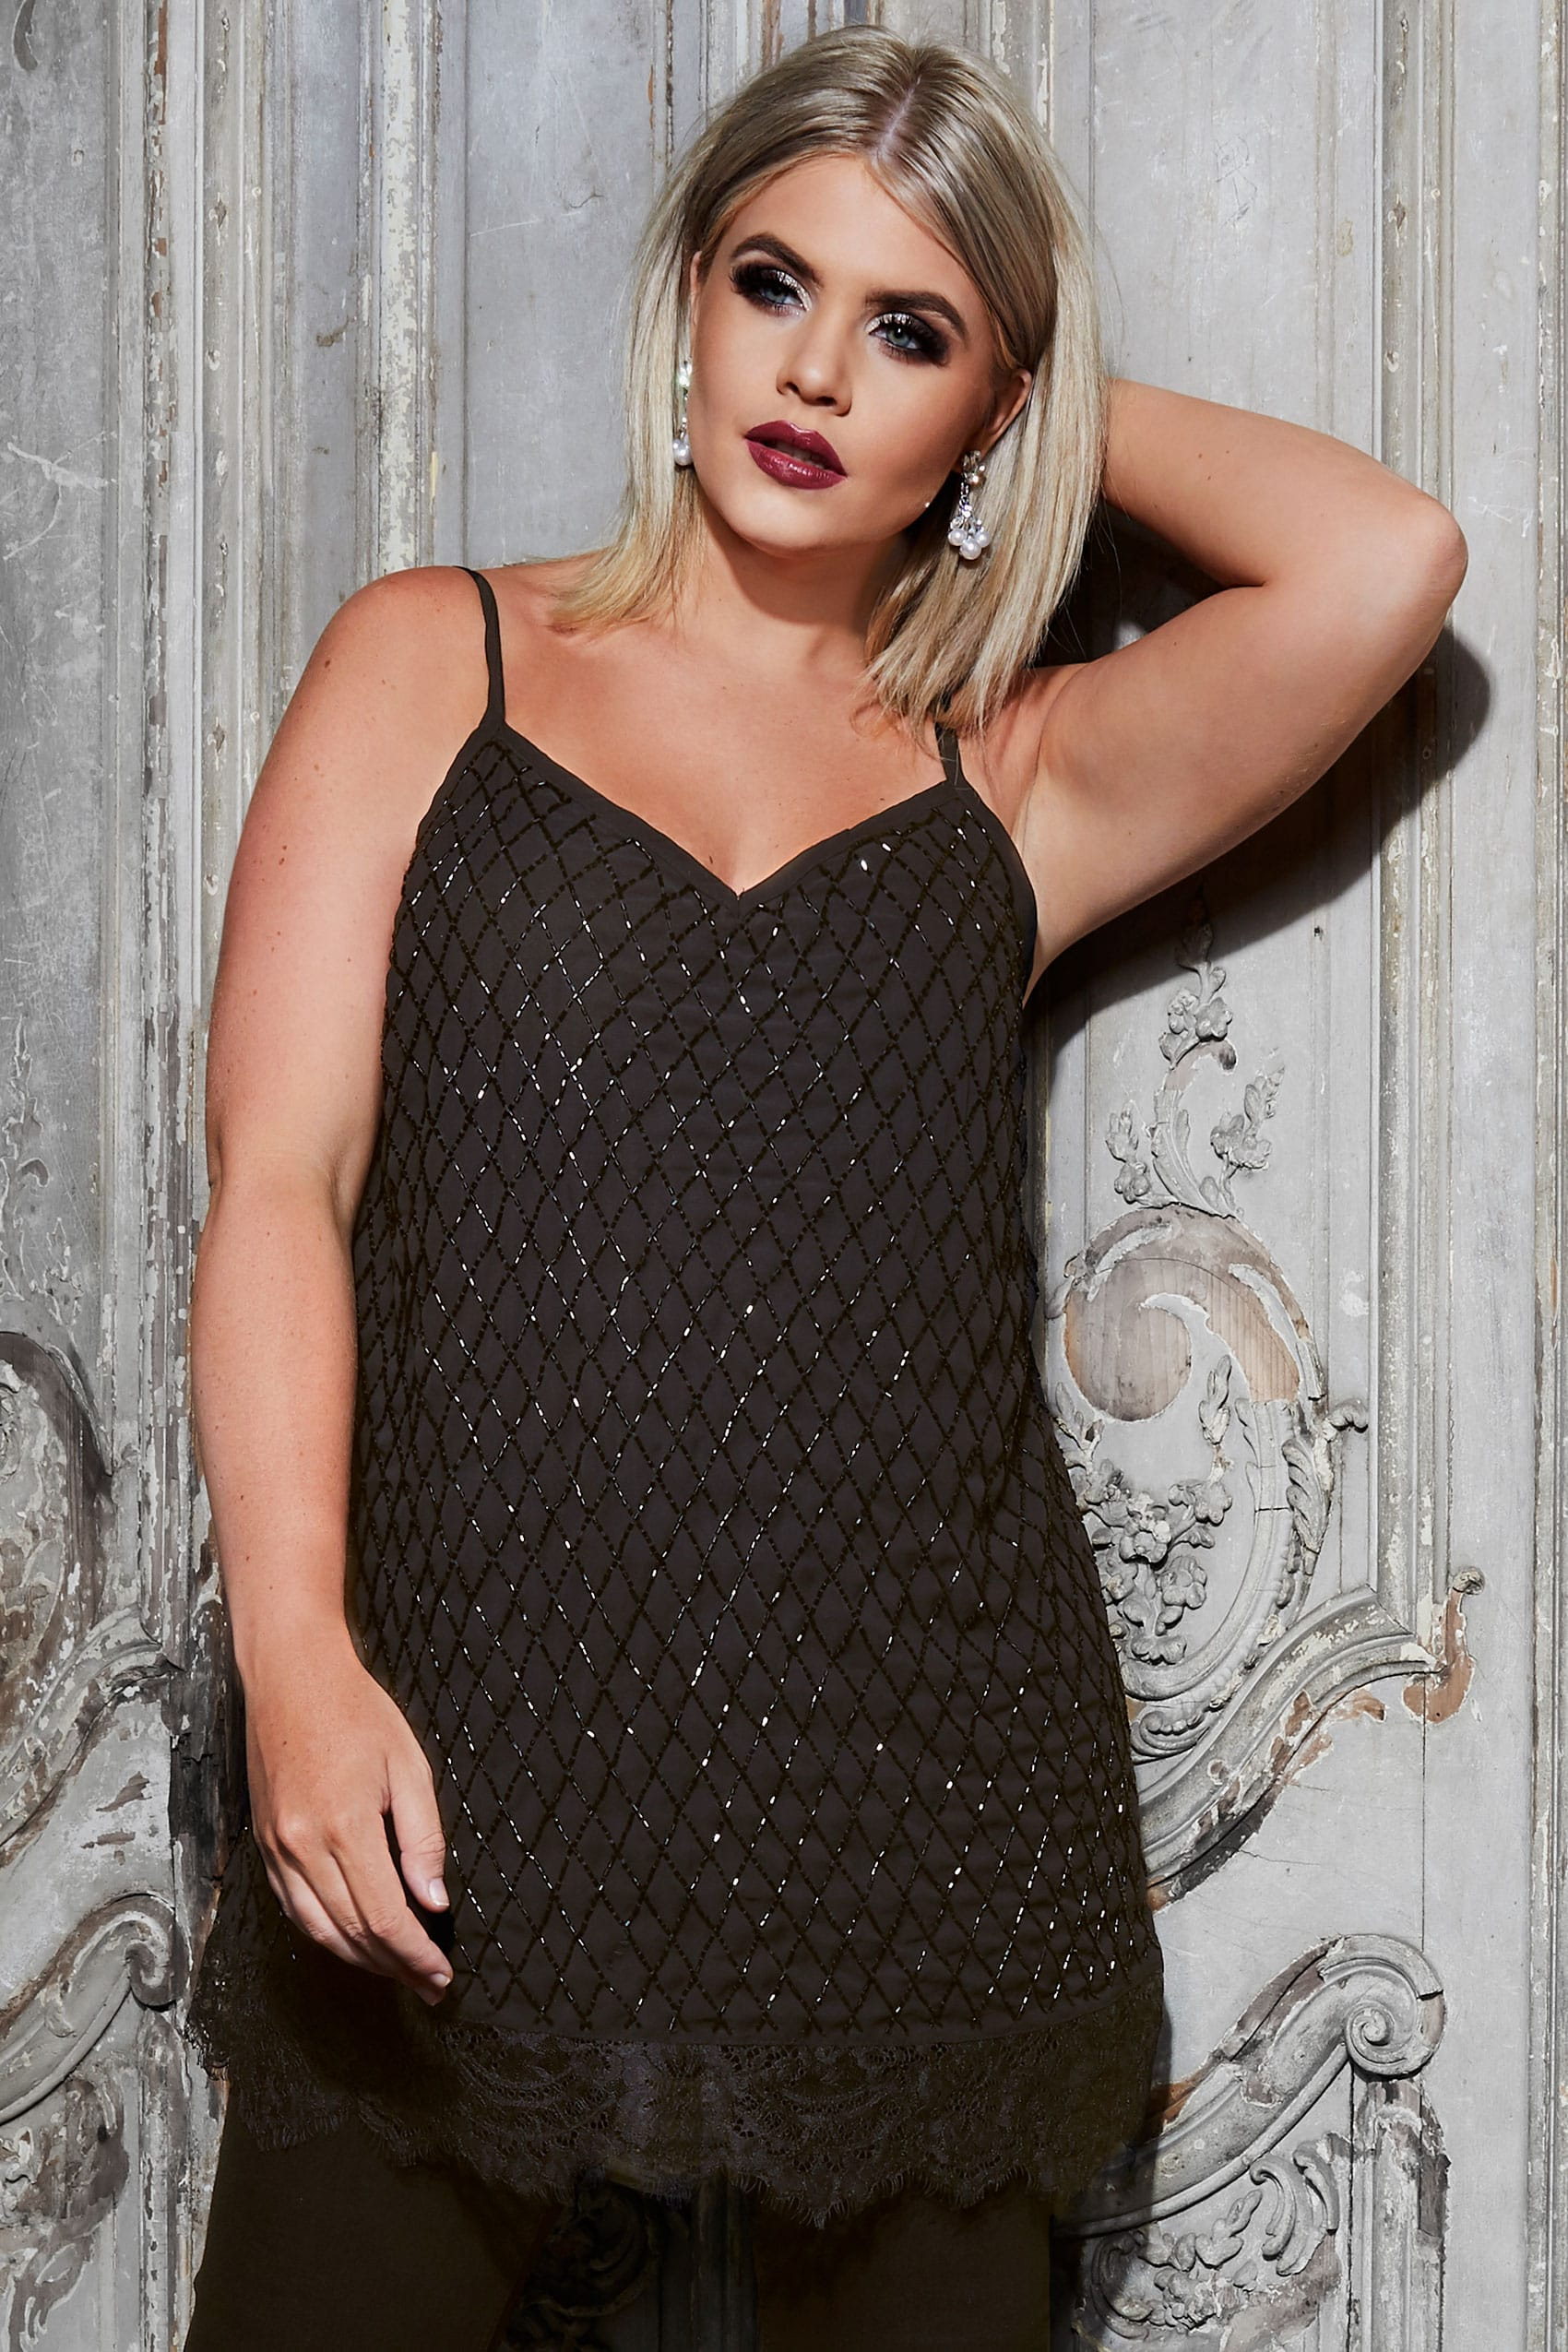 e5021834d787 LUXE Black Embellished Cami Top With Lace Hem, Plus size 16 to 32